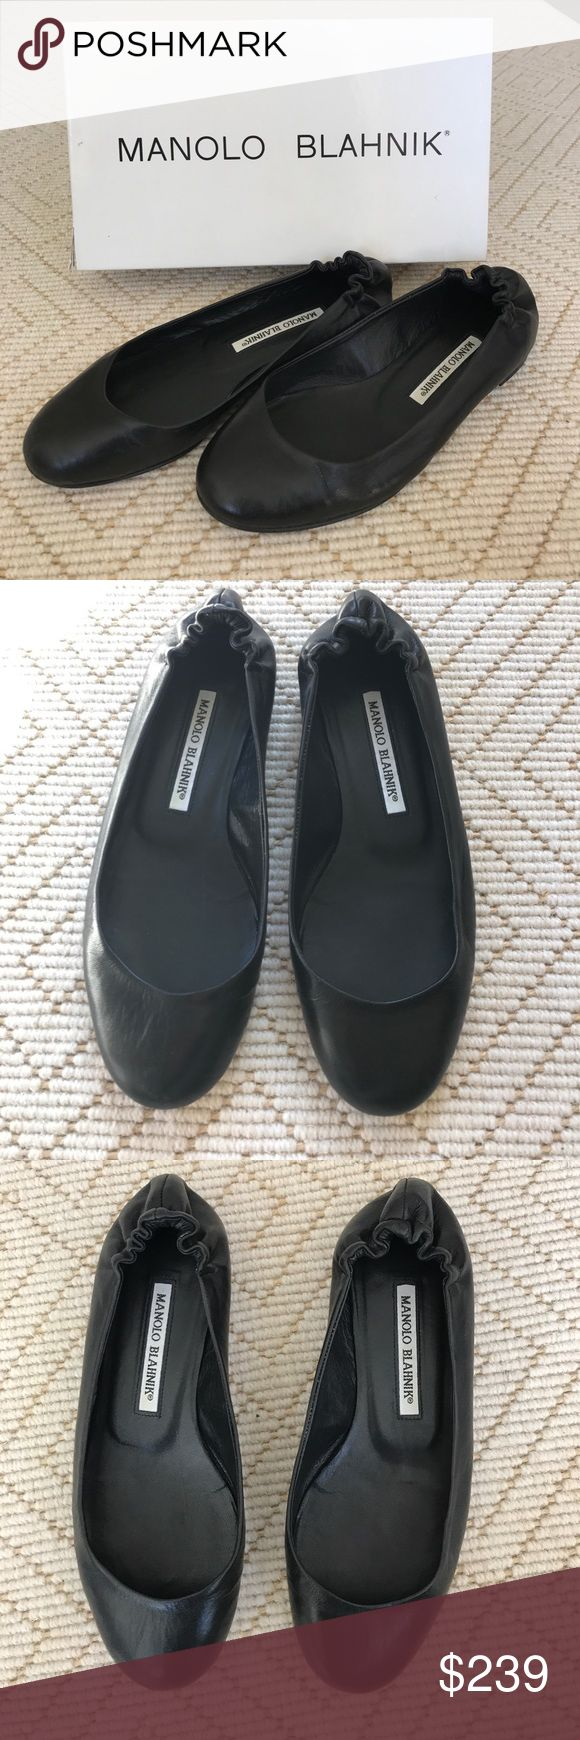 (Manolo Blahnik) Nappa Black Leather Ballet Flats (Manolo Blahnik) Selos Nappa Black Leather Flats with Elastic Back. In excellent used condition! Only sign of wear is on soles. Size 37. Manolo Blahnik Shoes Flats & Loafers